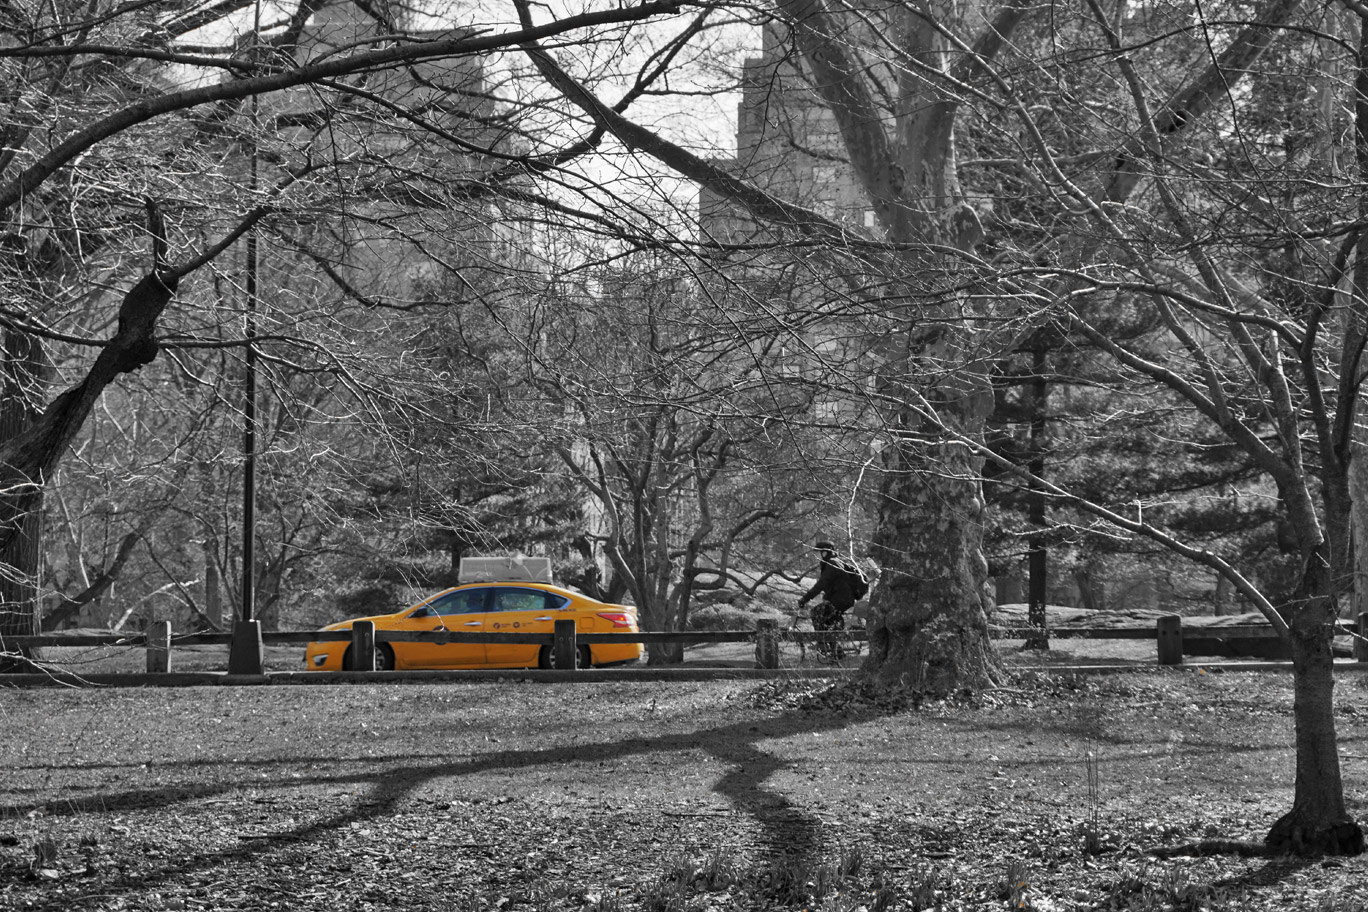 Yellow cab in Central Park